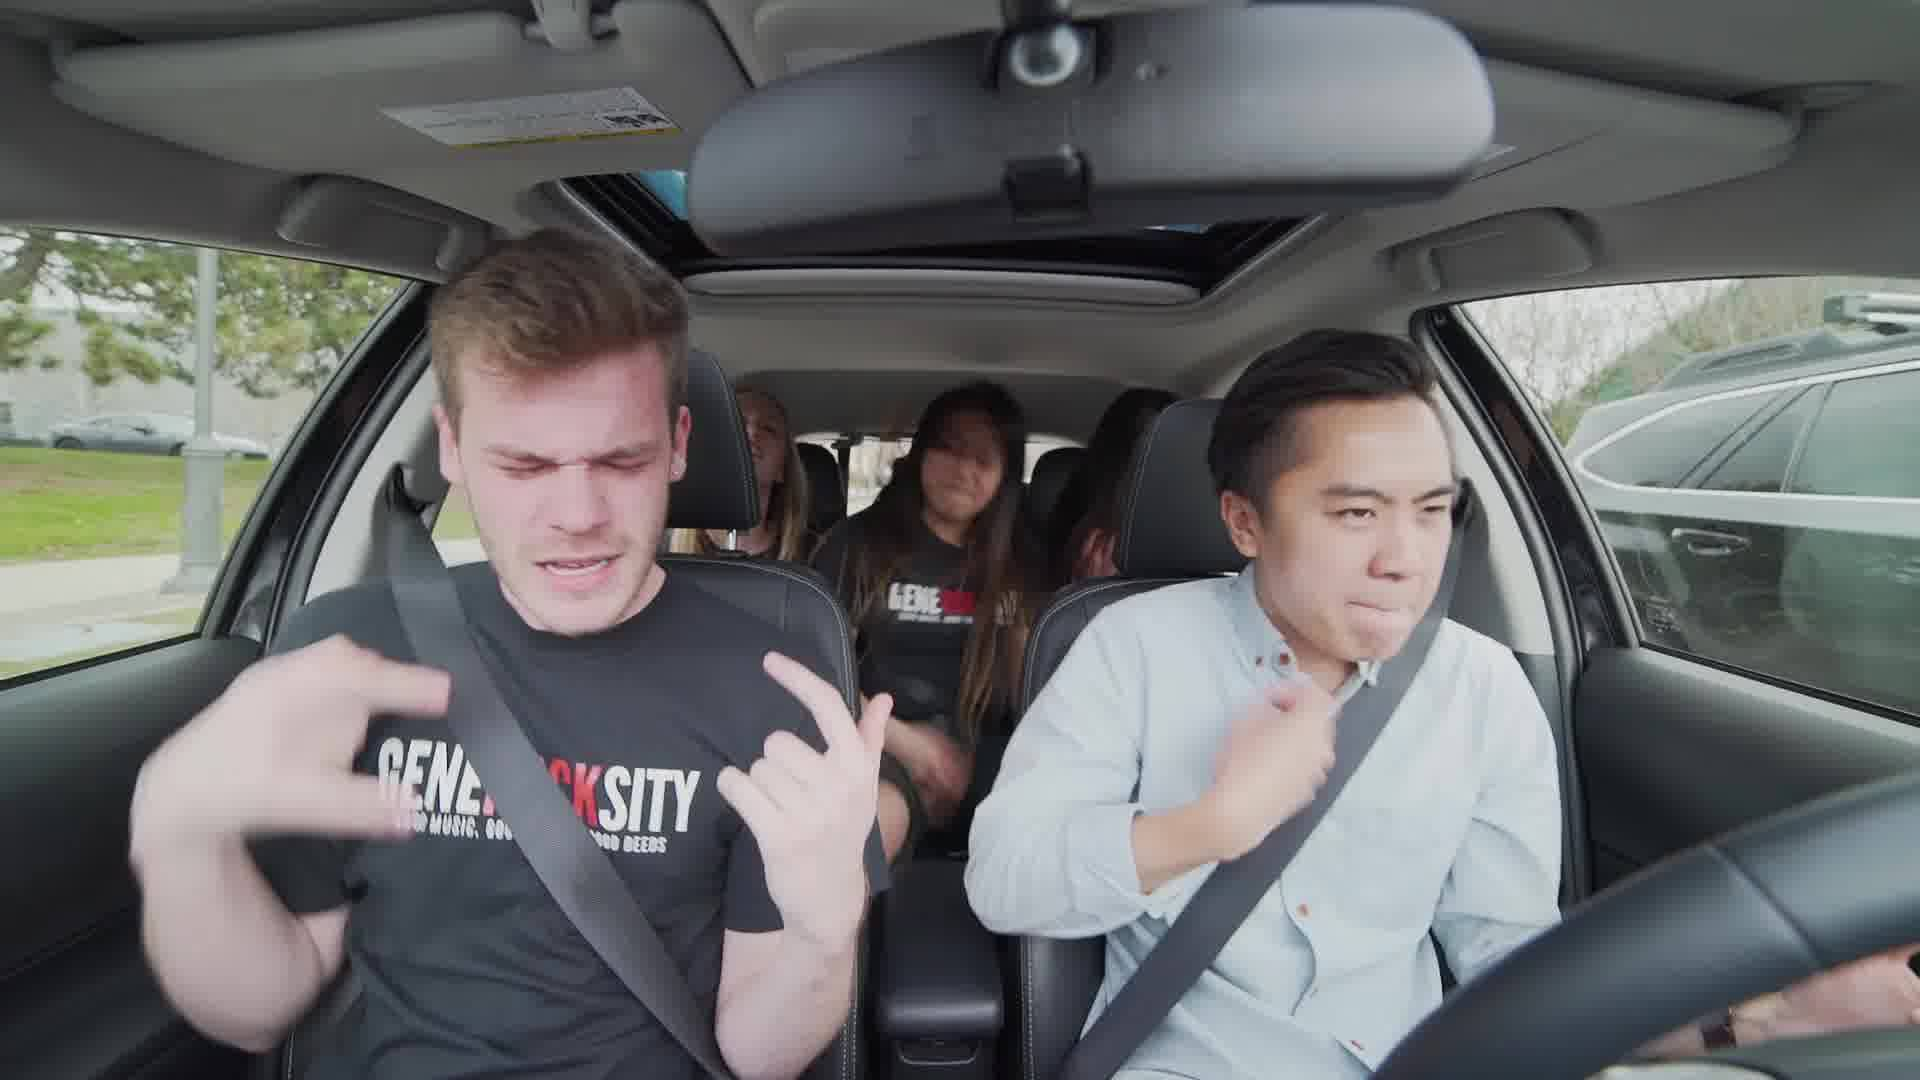 UBC Carpool Karaoke Vol 2